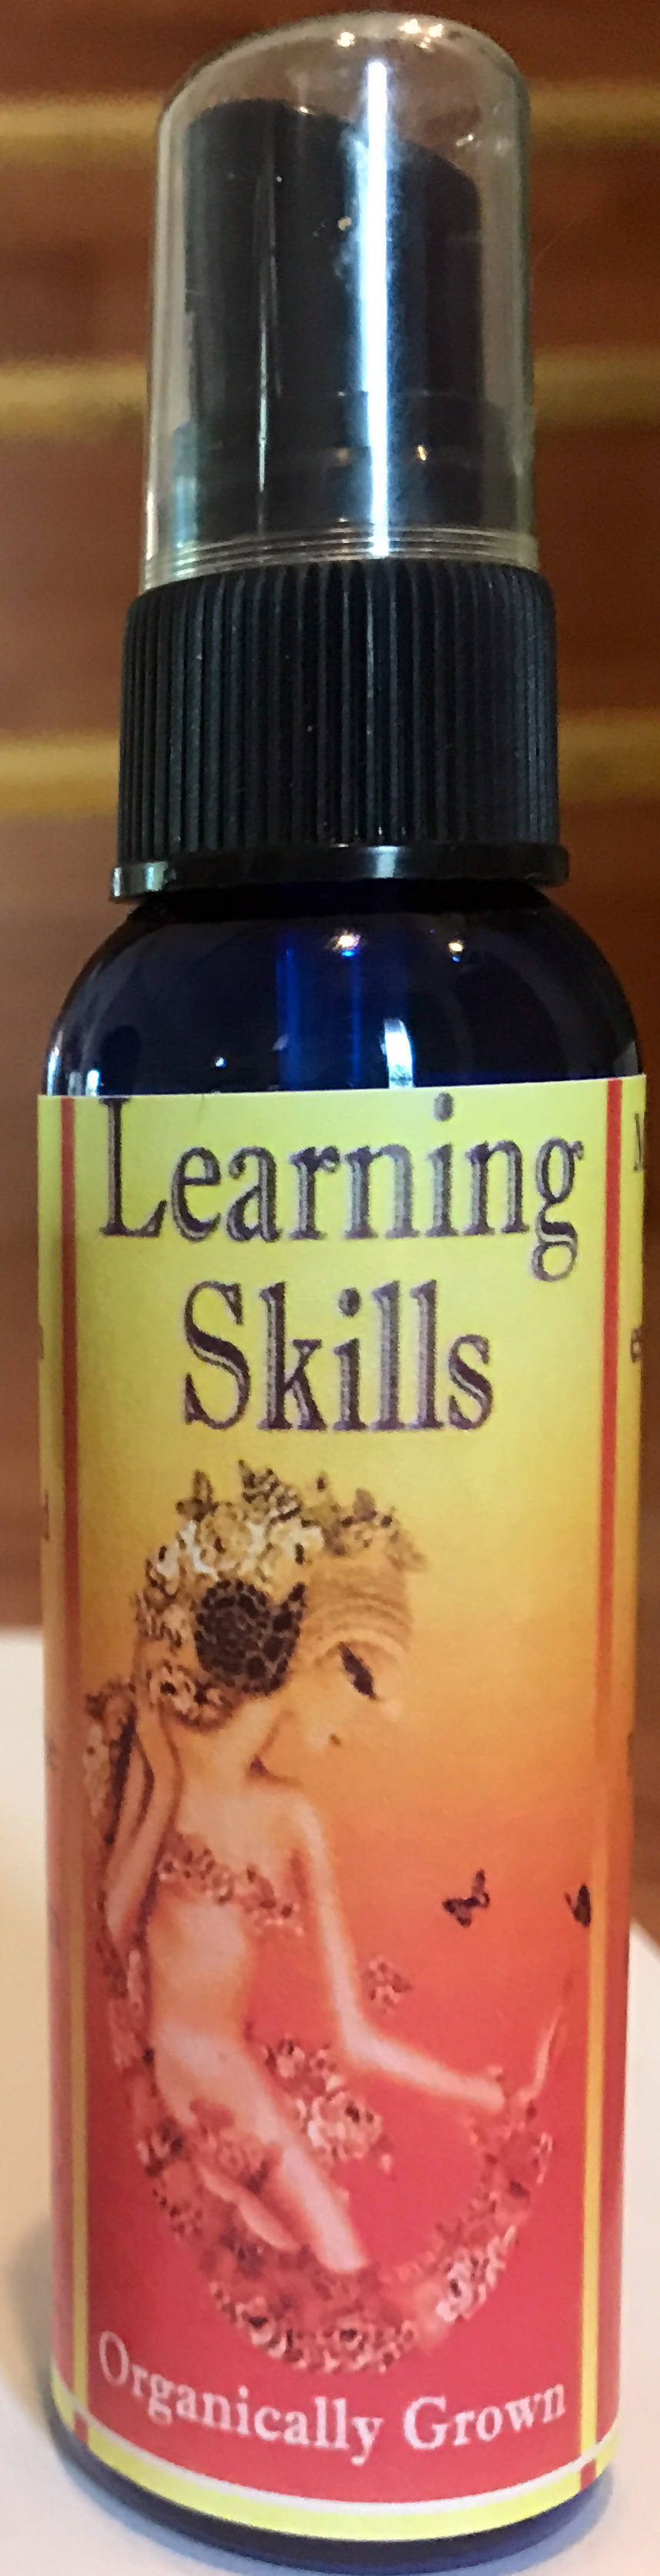 Learning Skills (Lemongrass/Rose scent) 2 oz Spray